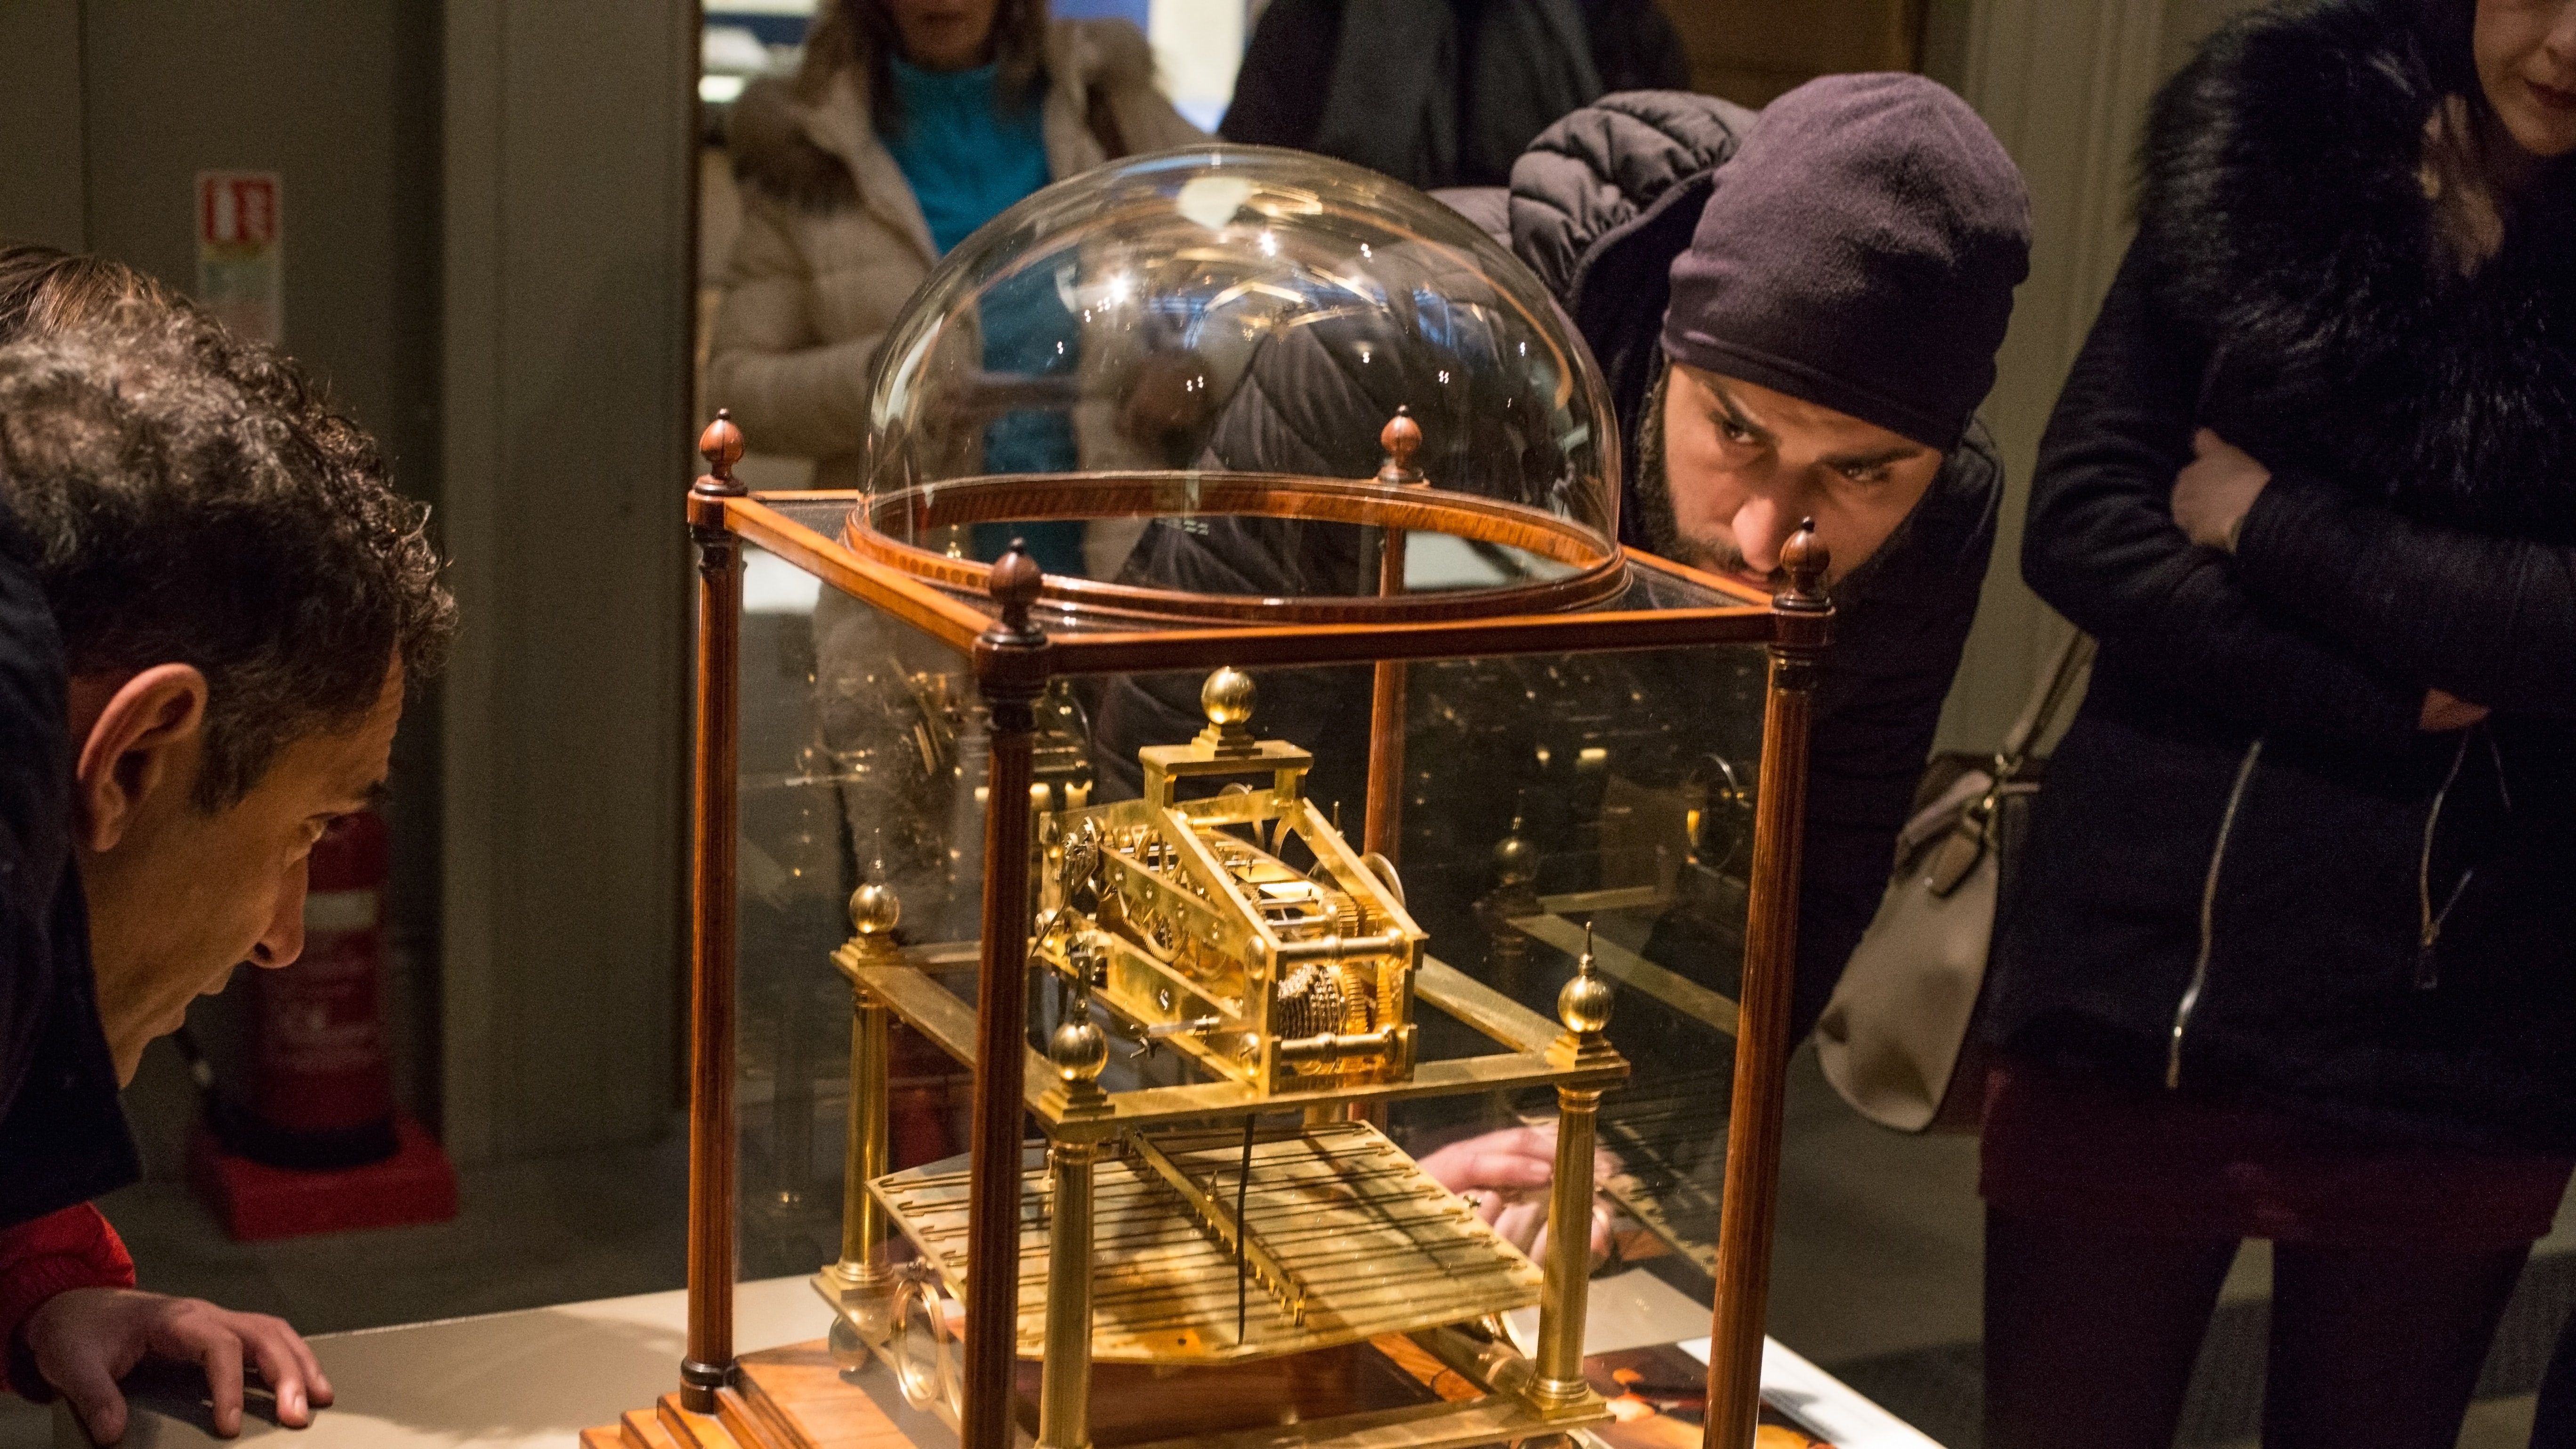 Found: The World's Oldest Clock With A Fusée, At The British Museum (And Other Cool Stuff)